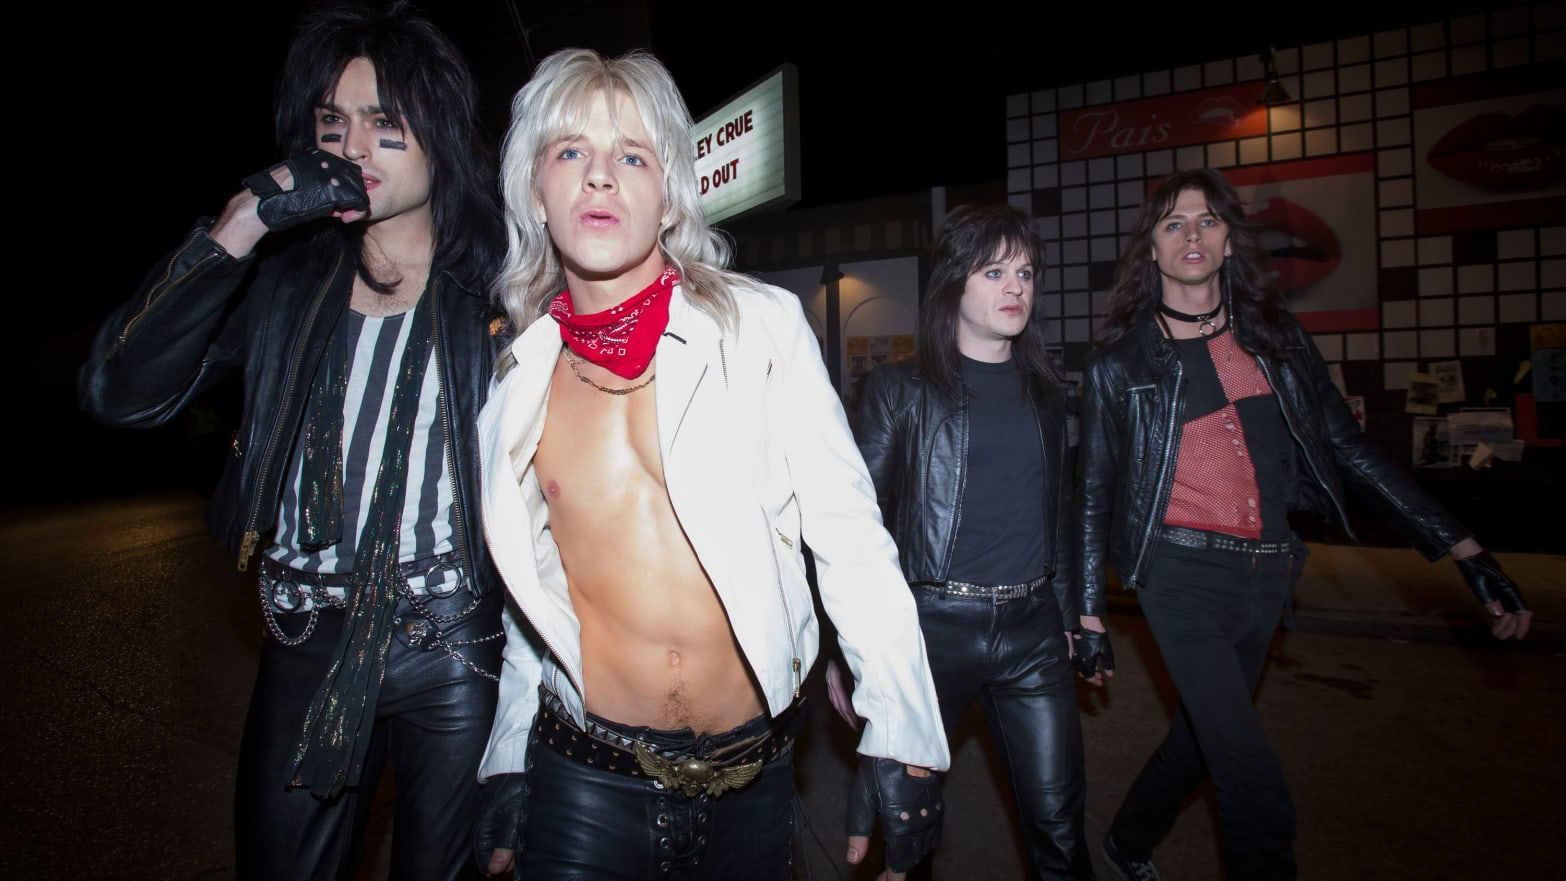 What Netflix's 'The Dirt' Leaves Out: Motley Crue's Assaults on Women and an Alleged Rape